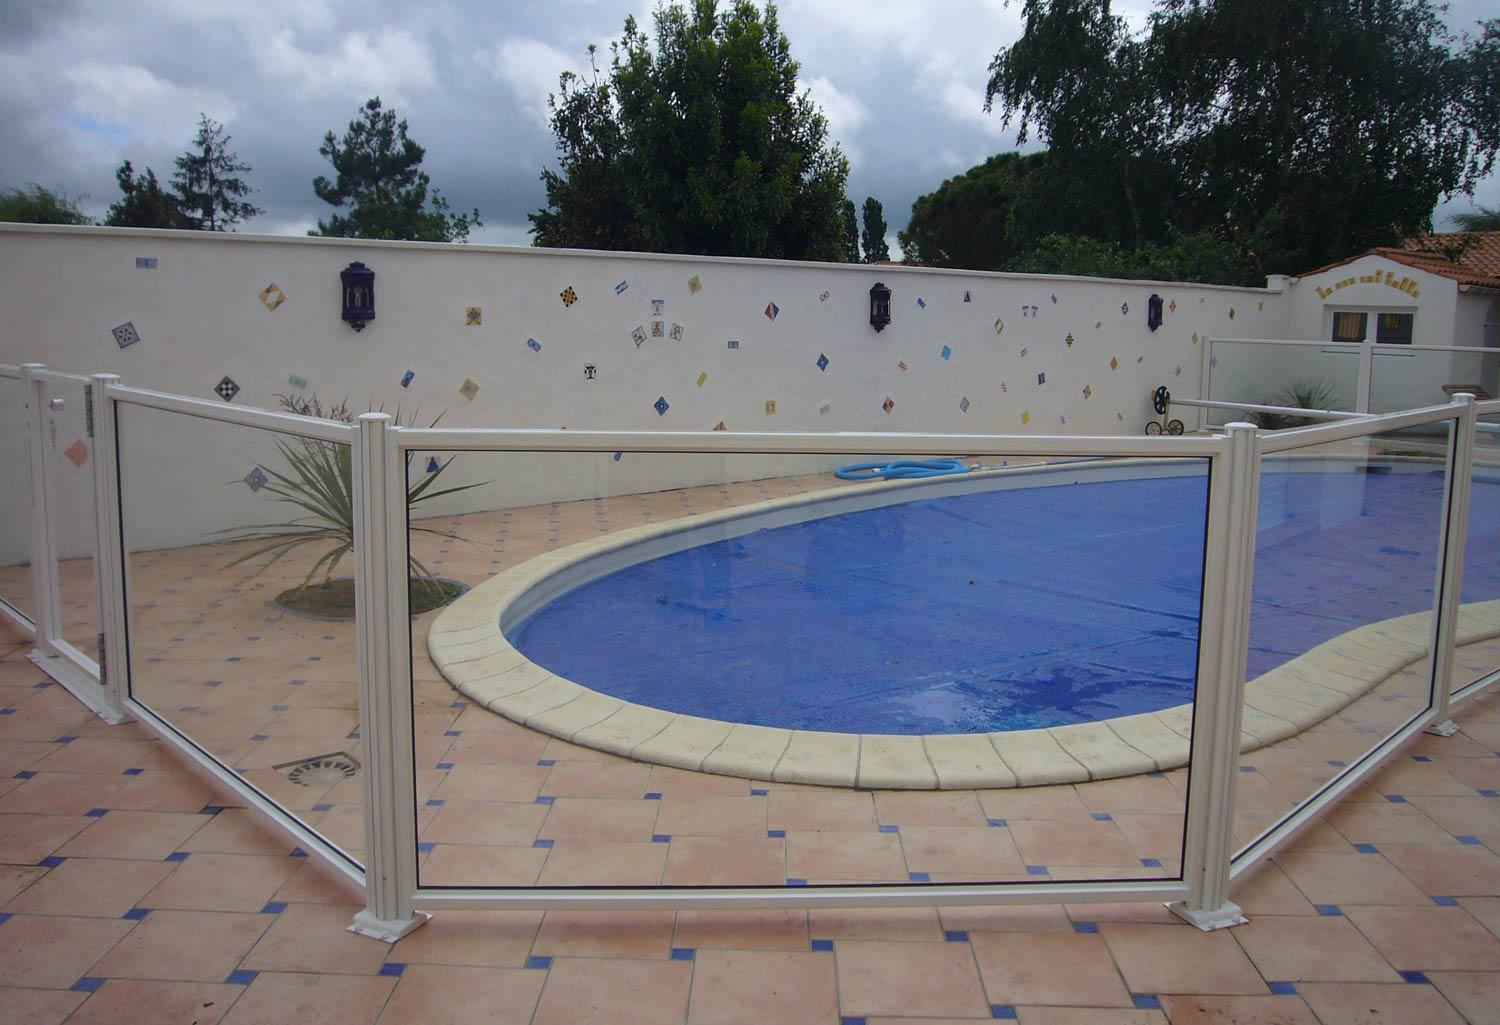 Barriere de piscine barri re piscine inox peint et verre - Verre recycle pour filtre piscine ...